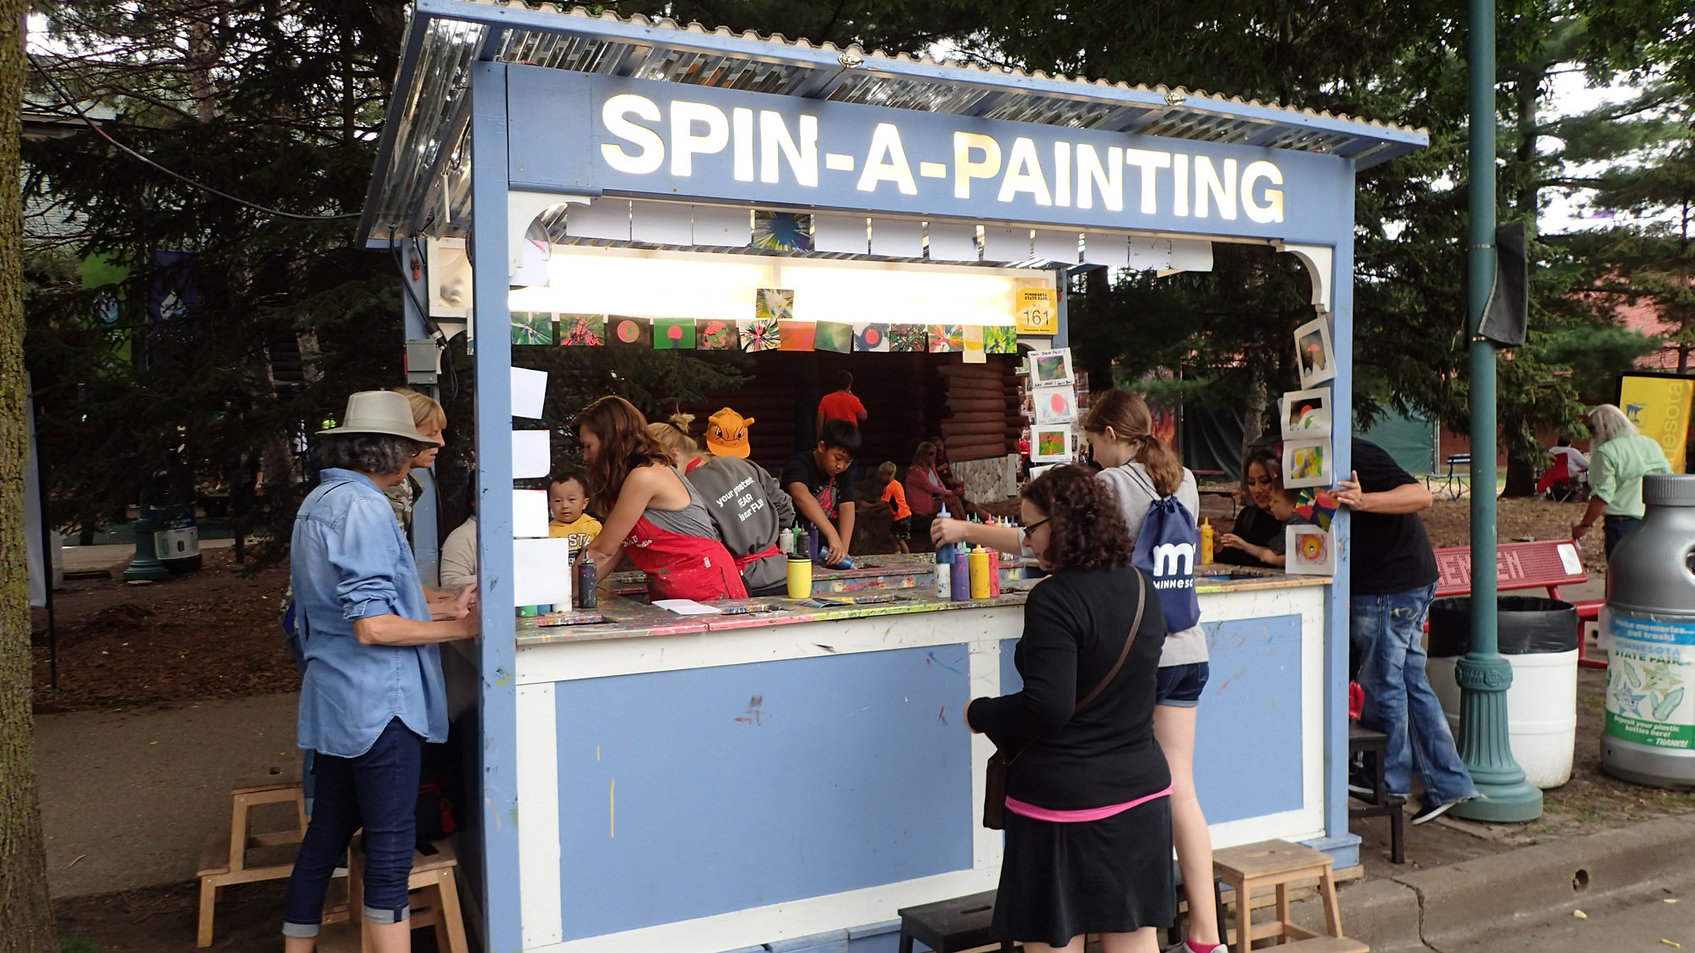 Spin-A-Painting